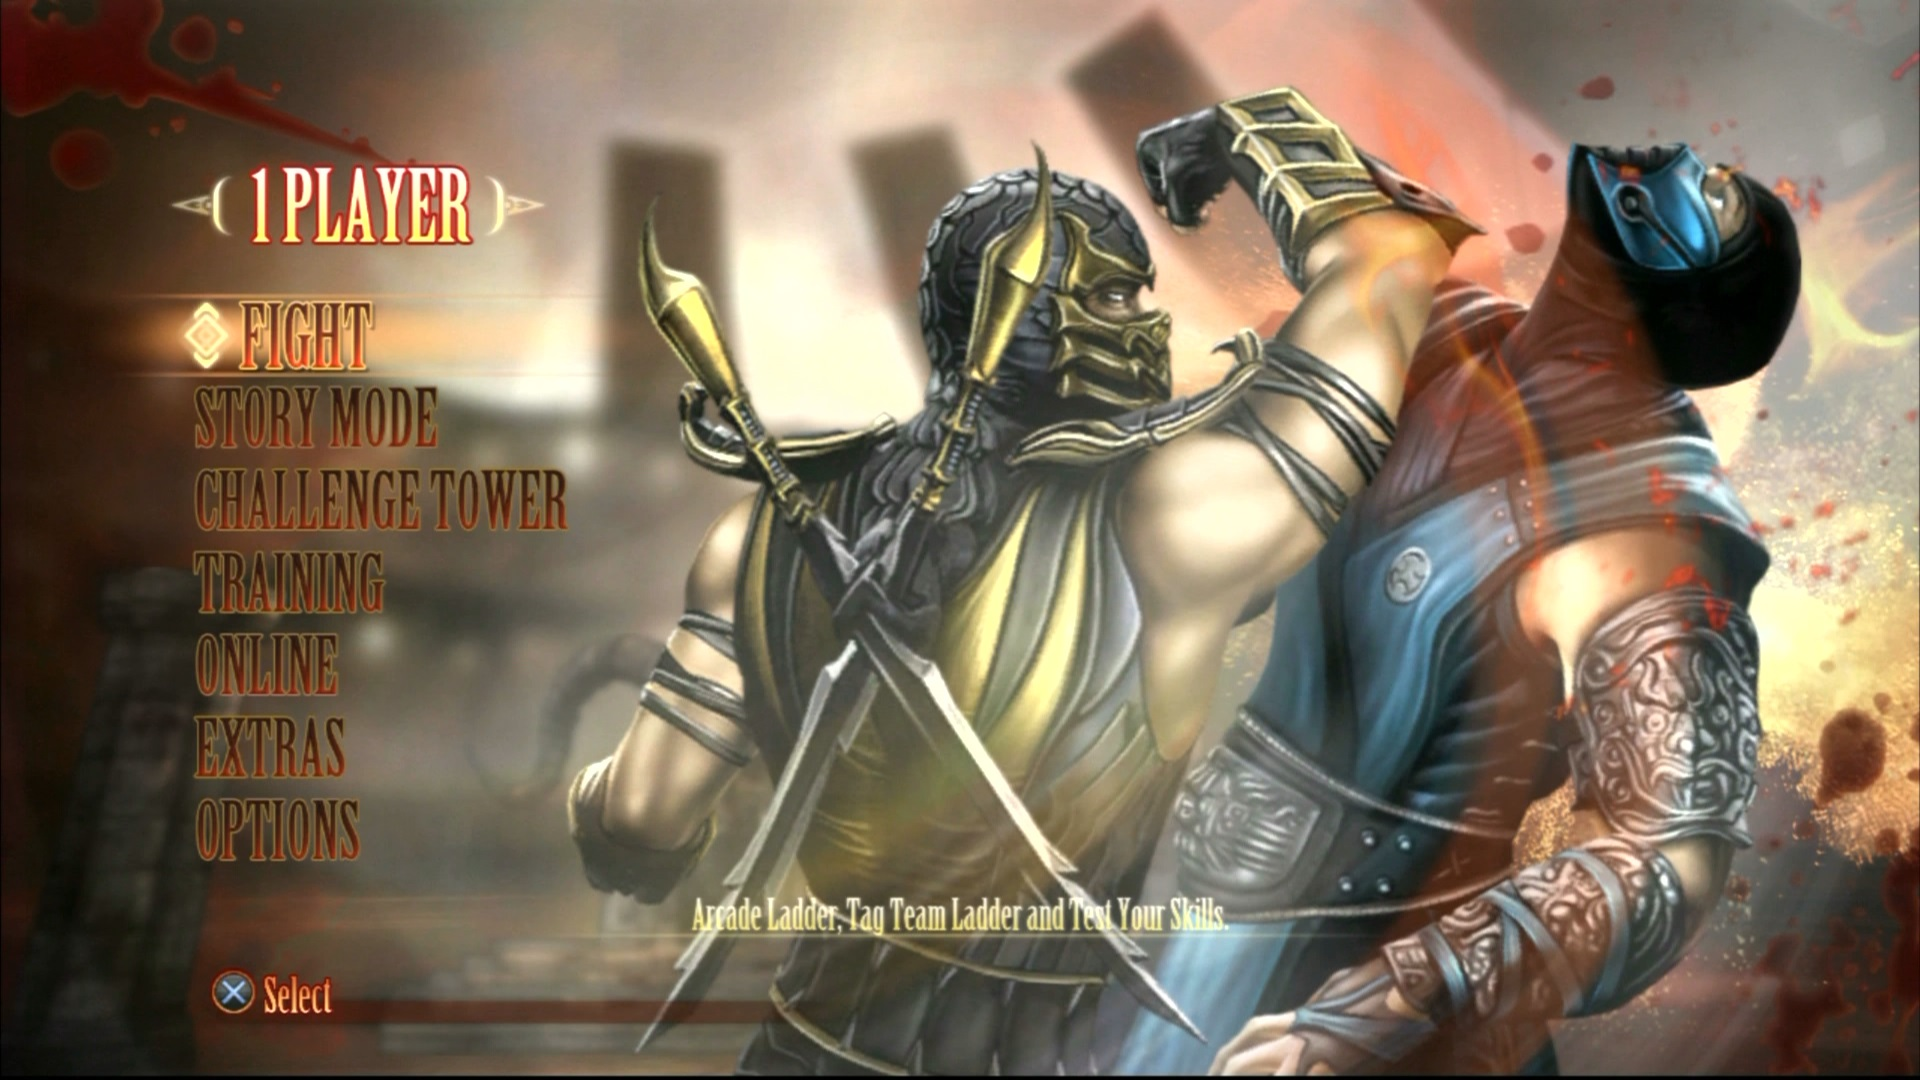 Mortal_Kombat_9_main_menu